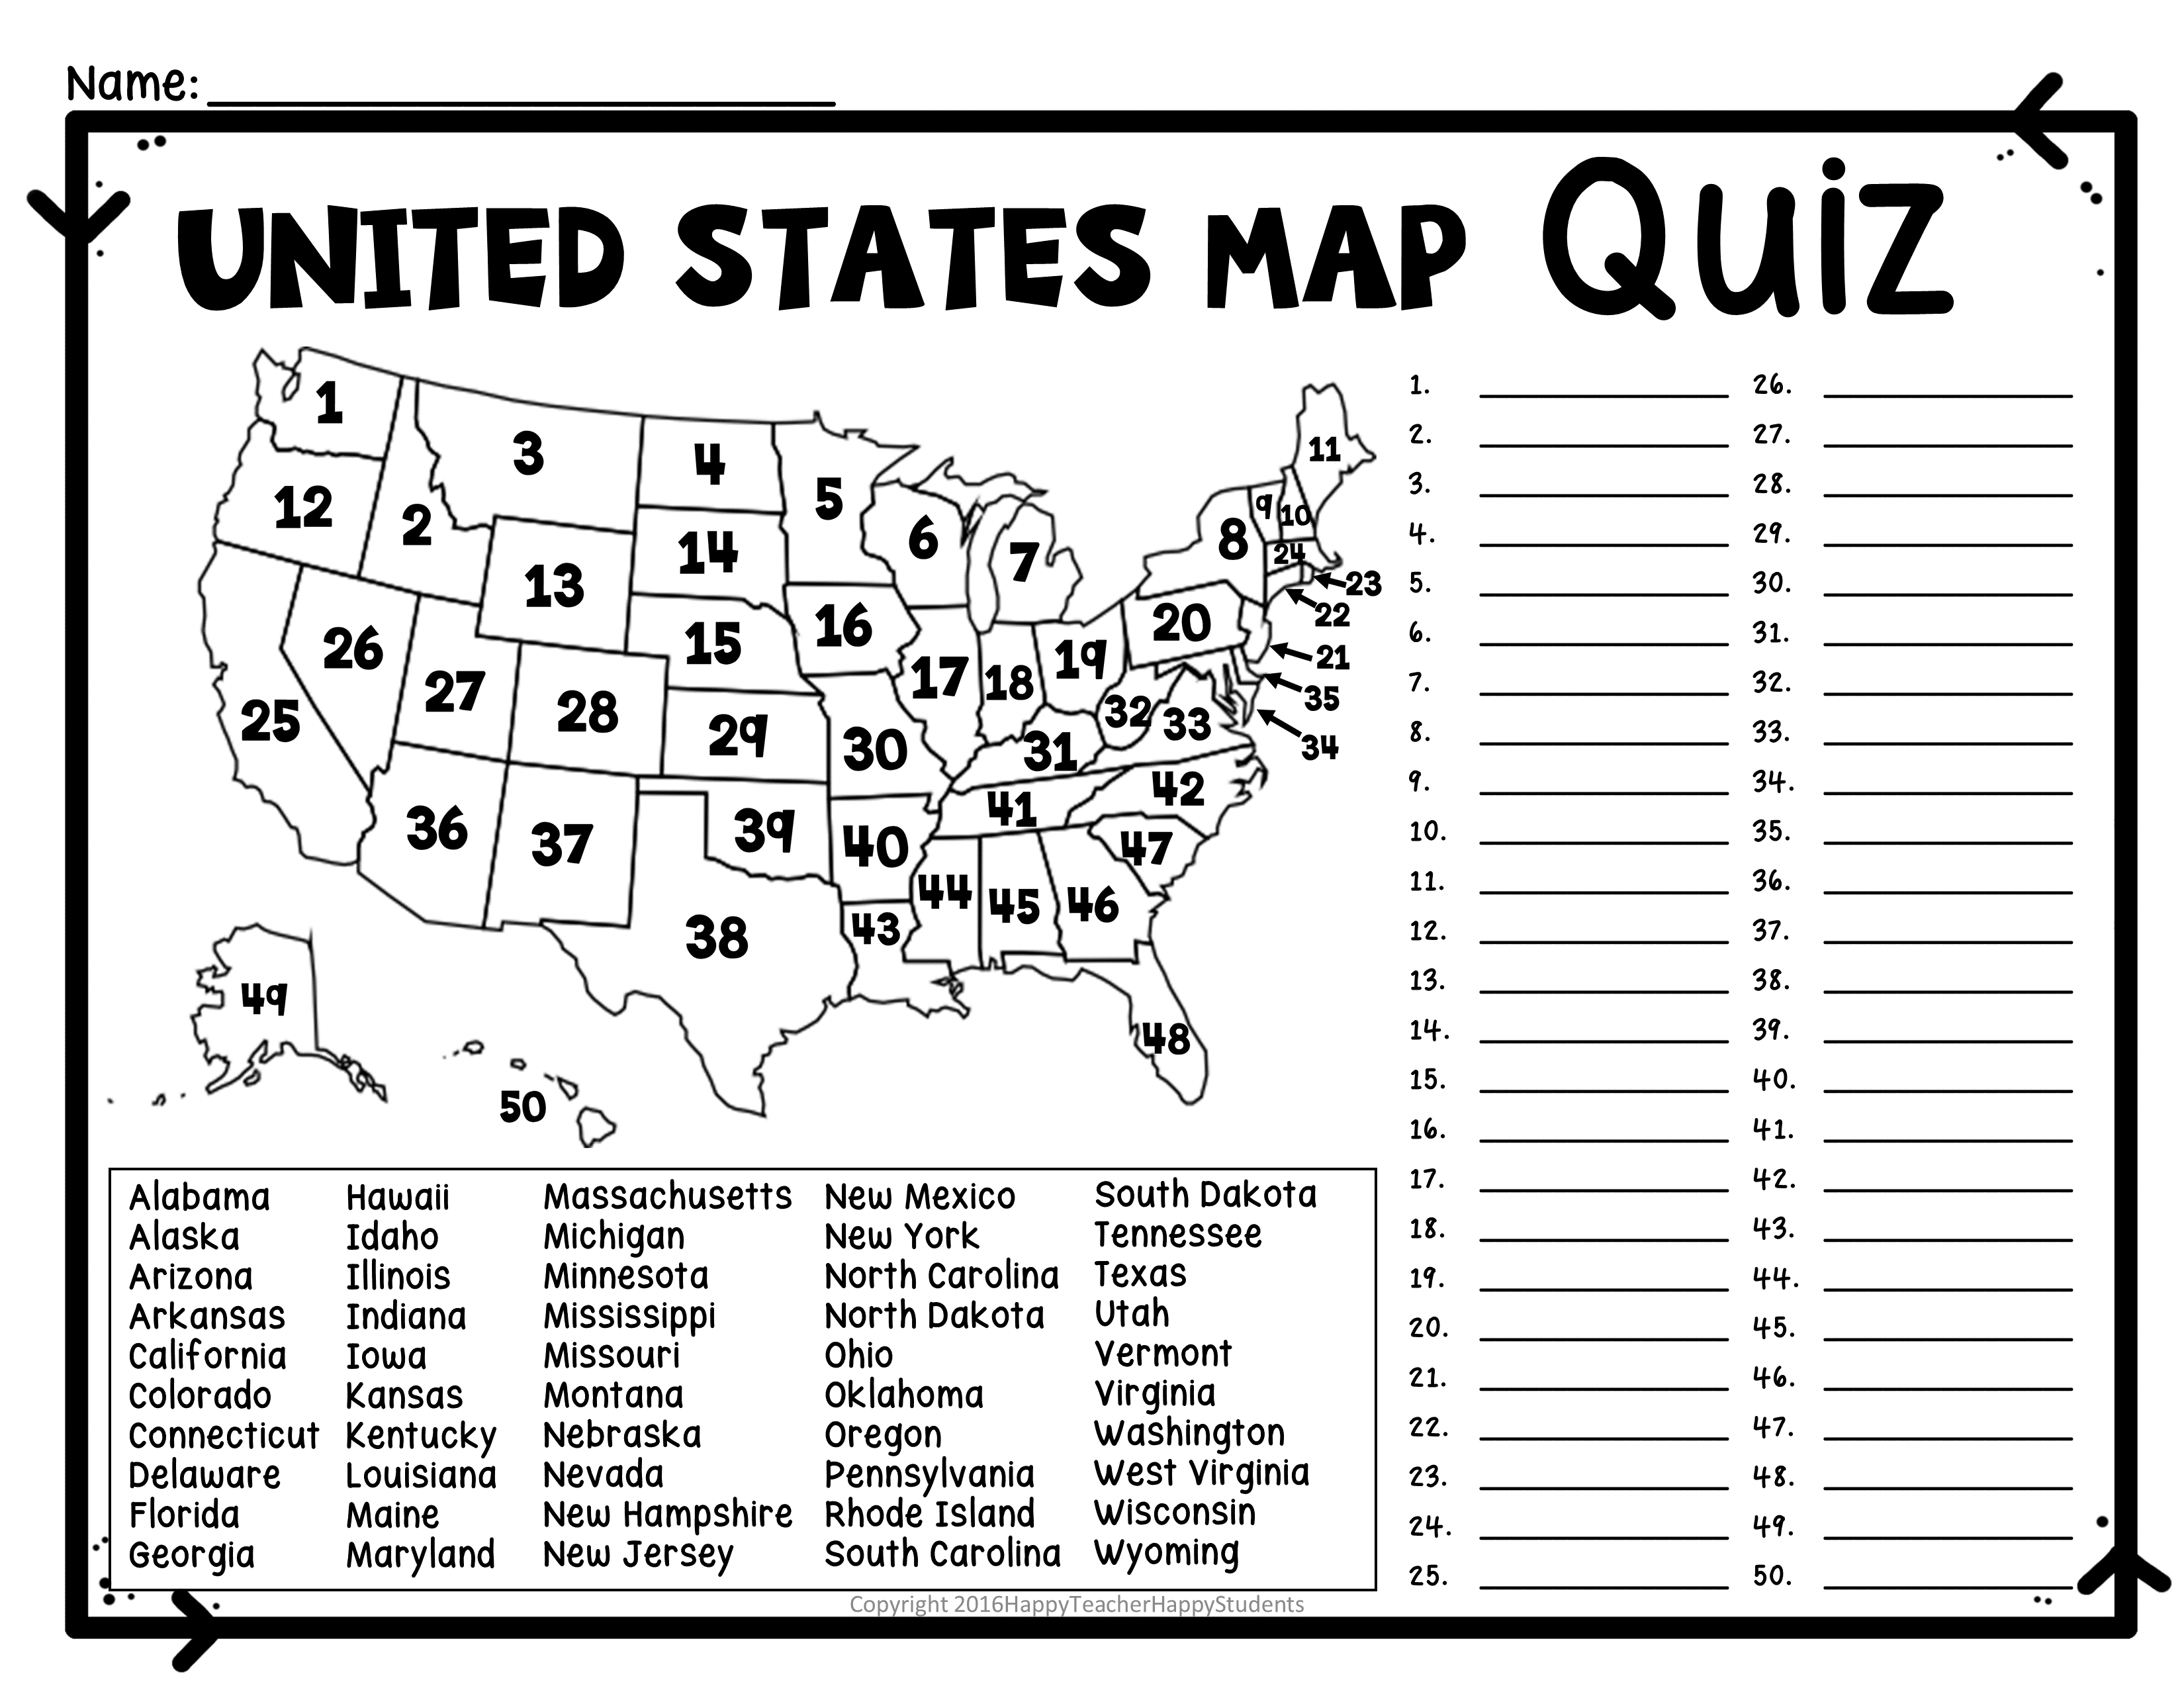 Image of tests quizzes elementary school clipart png black and white download United States Map Quiz & Worksheet: USA Map Test with Practice ... png black and white download